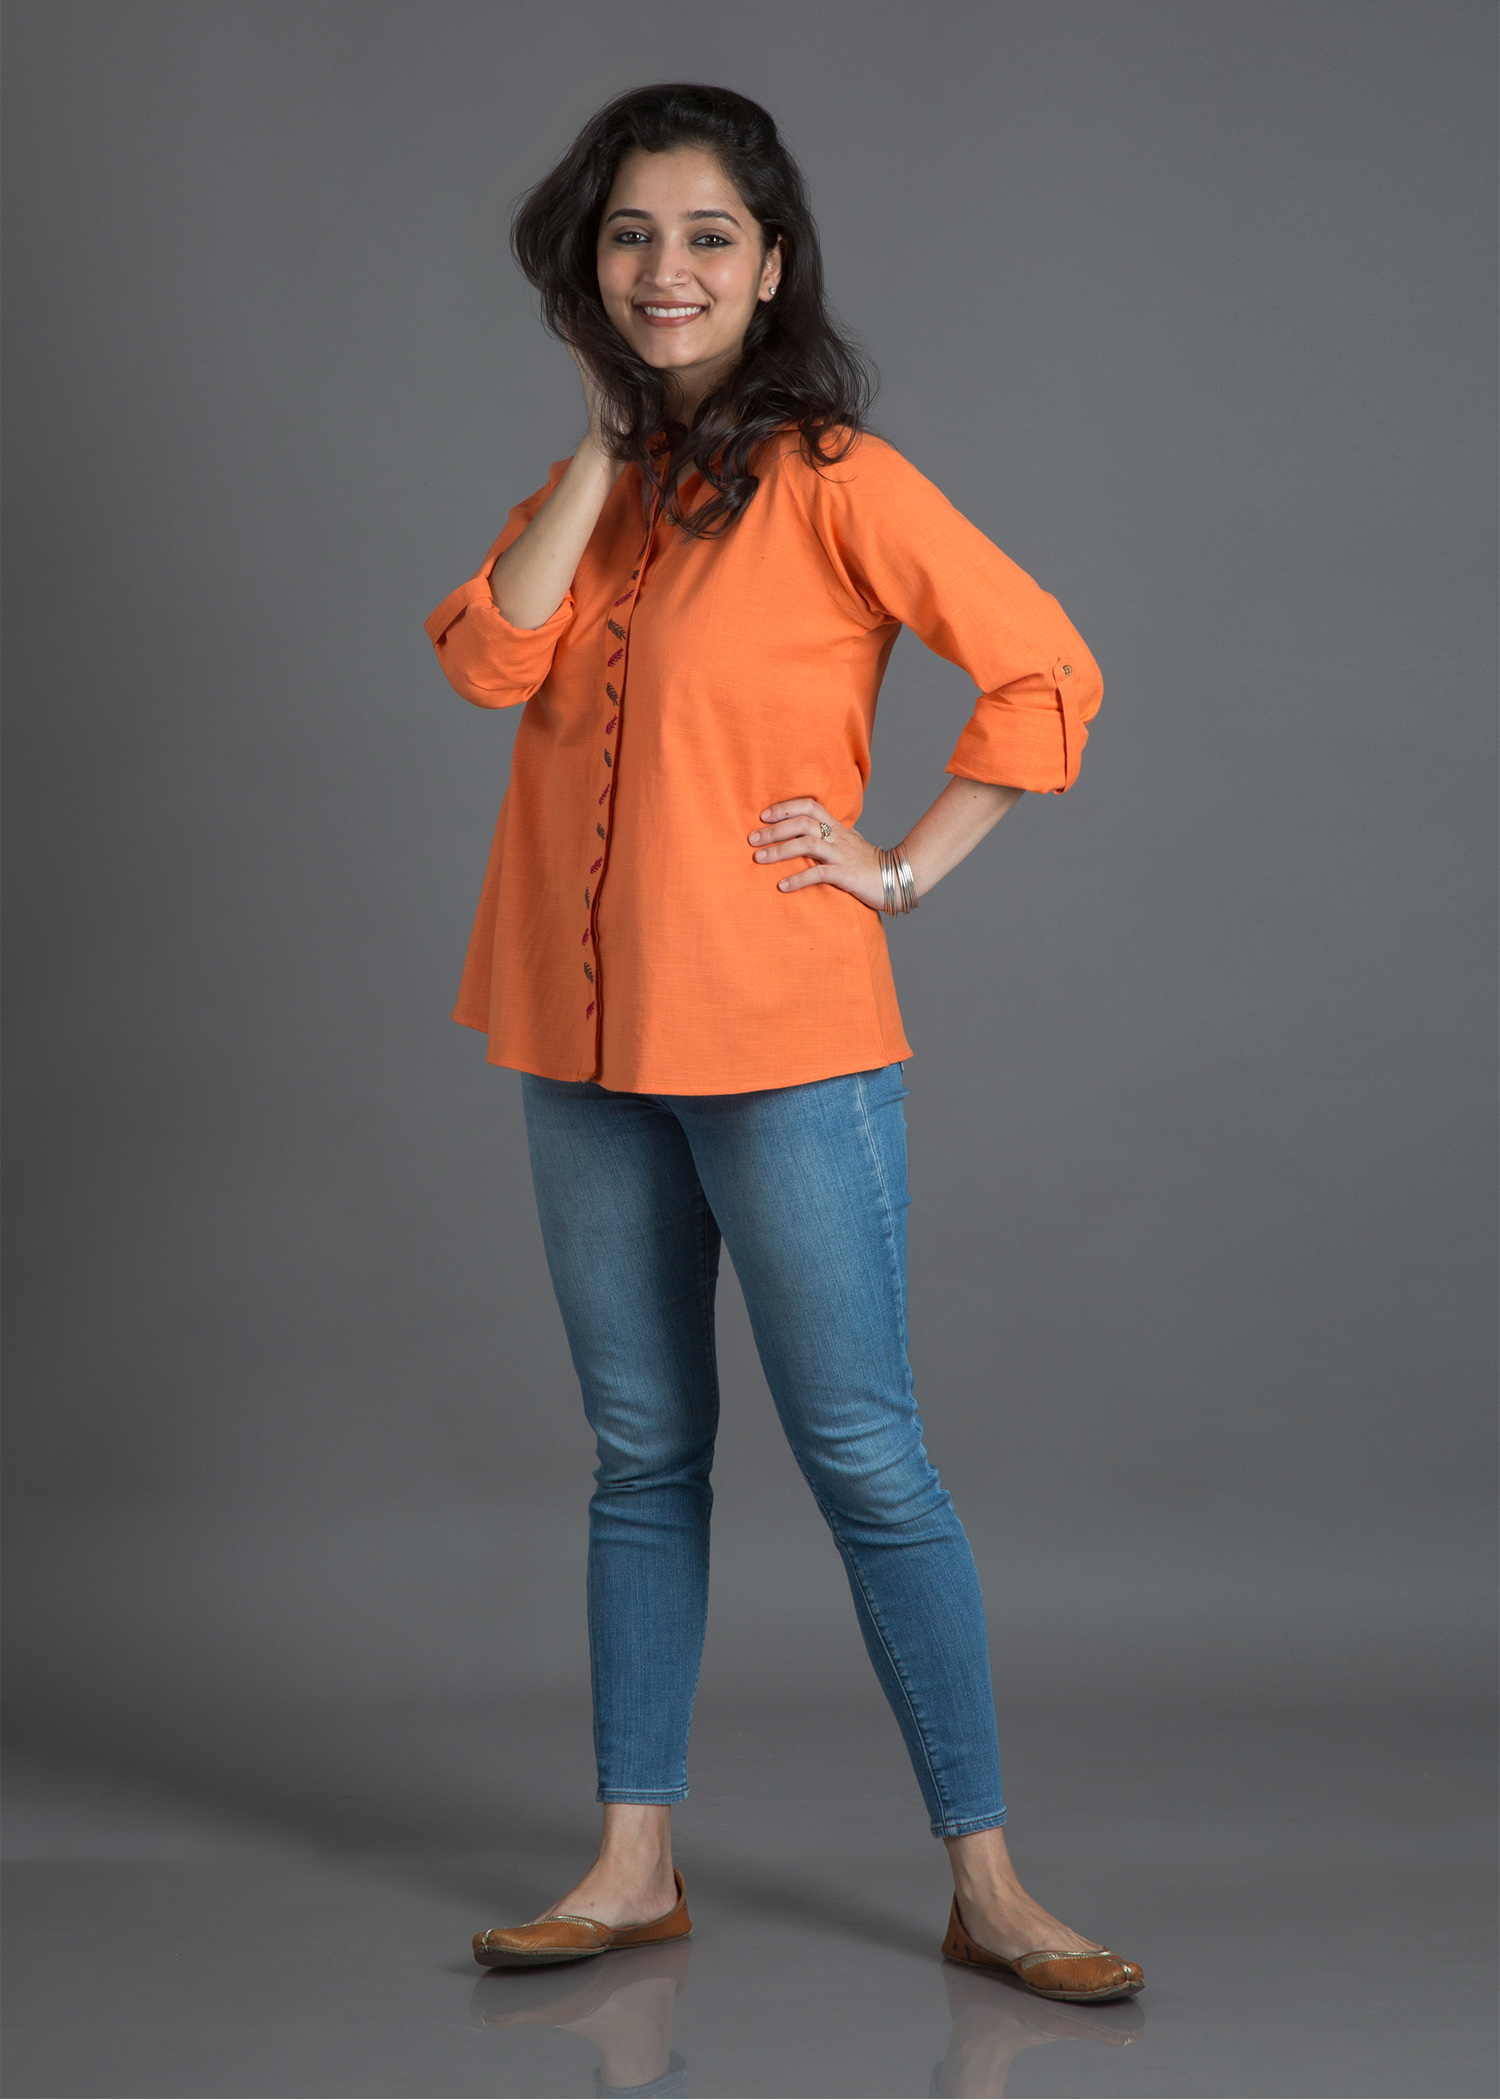 Tangerine Handwoven Cotton Shirt with Handwork